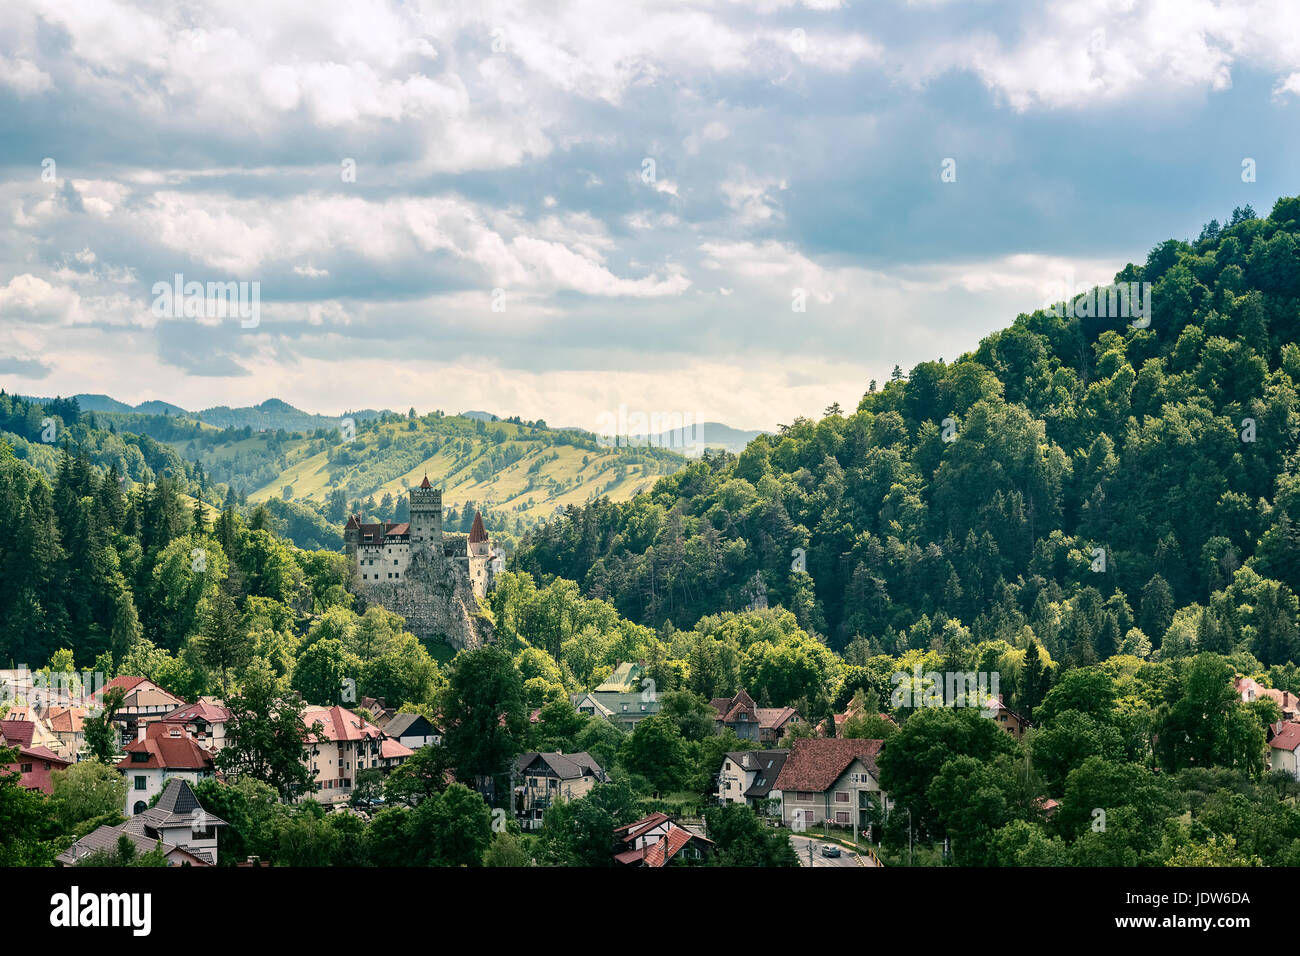 Countryside overlook view of houses and castle over the hills in the summer Stock Photo